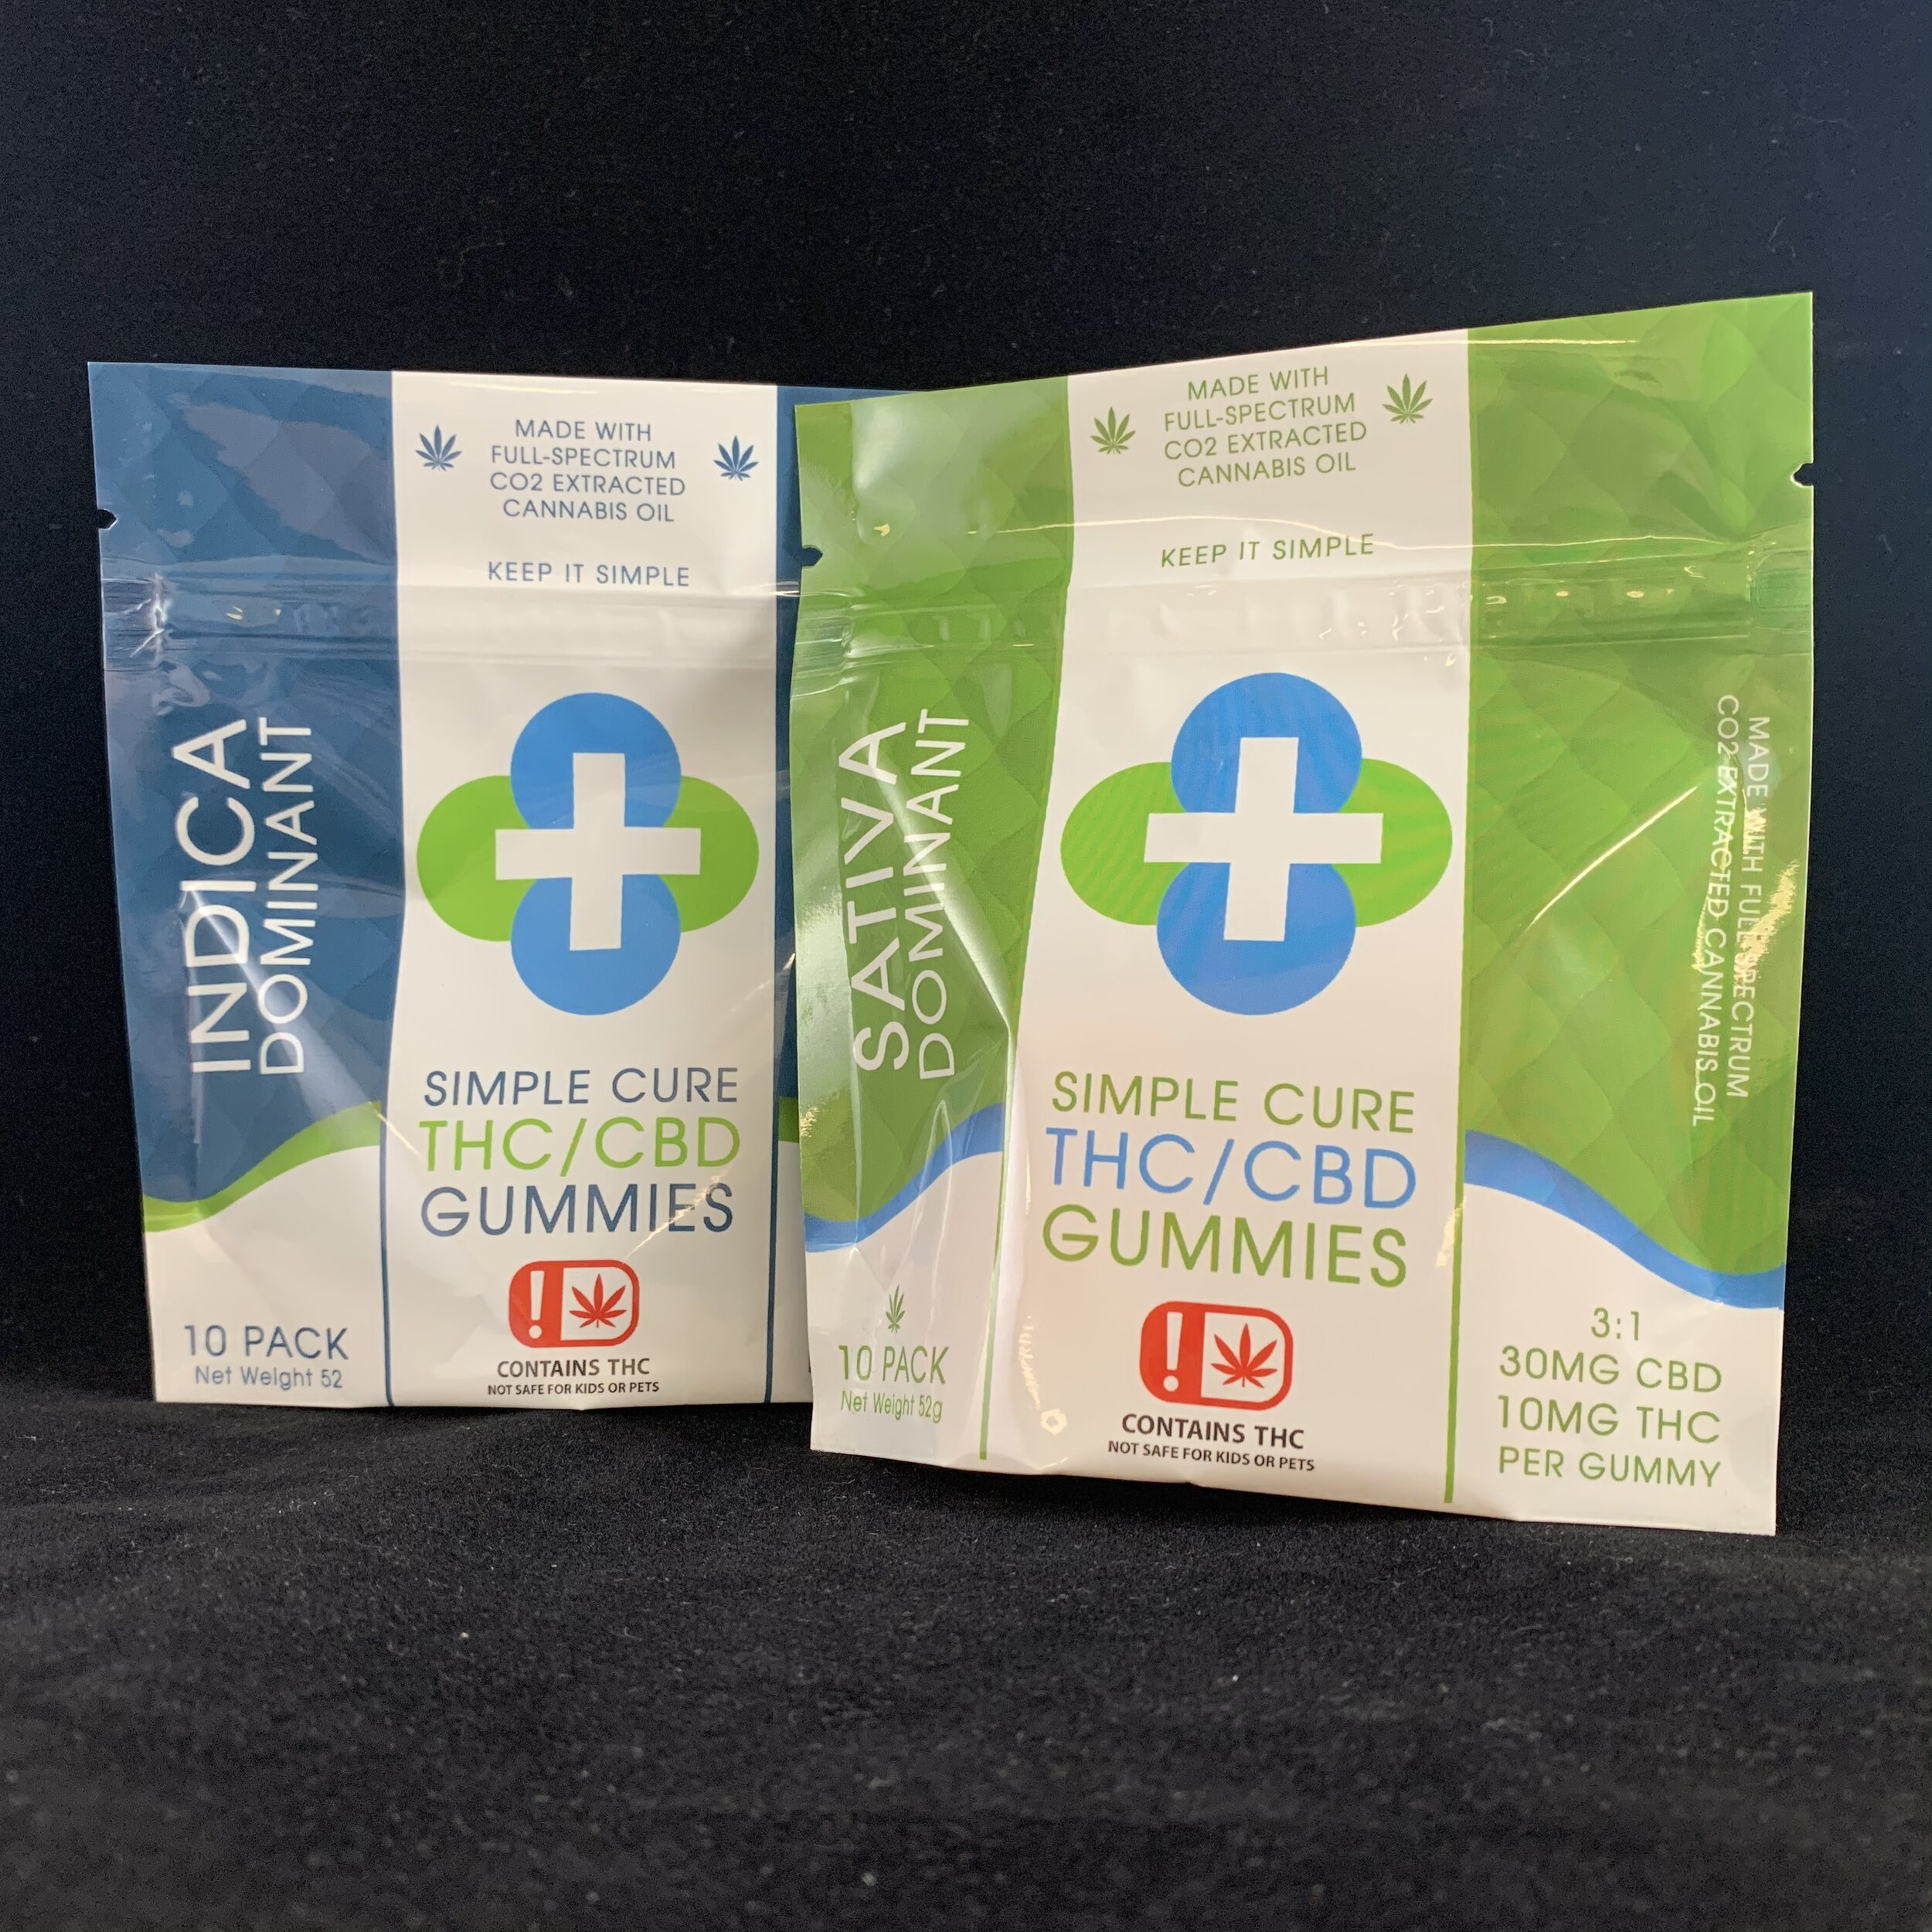 Thc Cbd Edibles Simple Cure Premium Cannabis Extracts